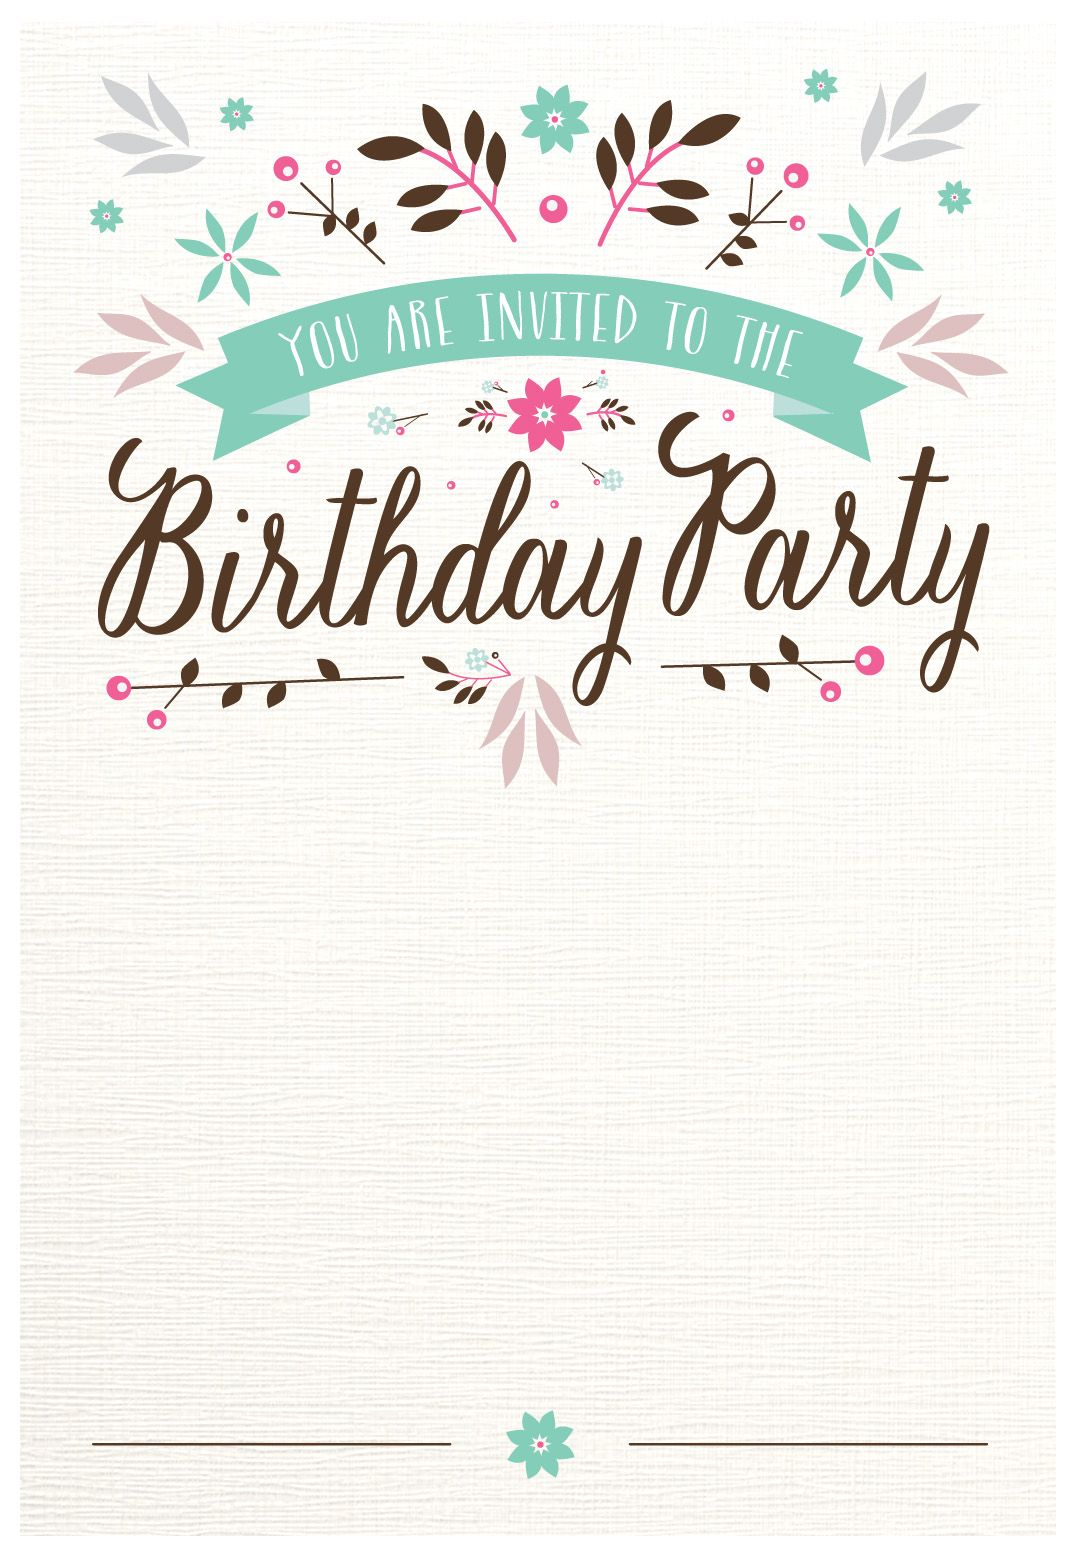 Flat Floral Free Printable Birthday Invitation Template – Invitations Birthday Party Free Printable